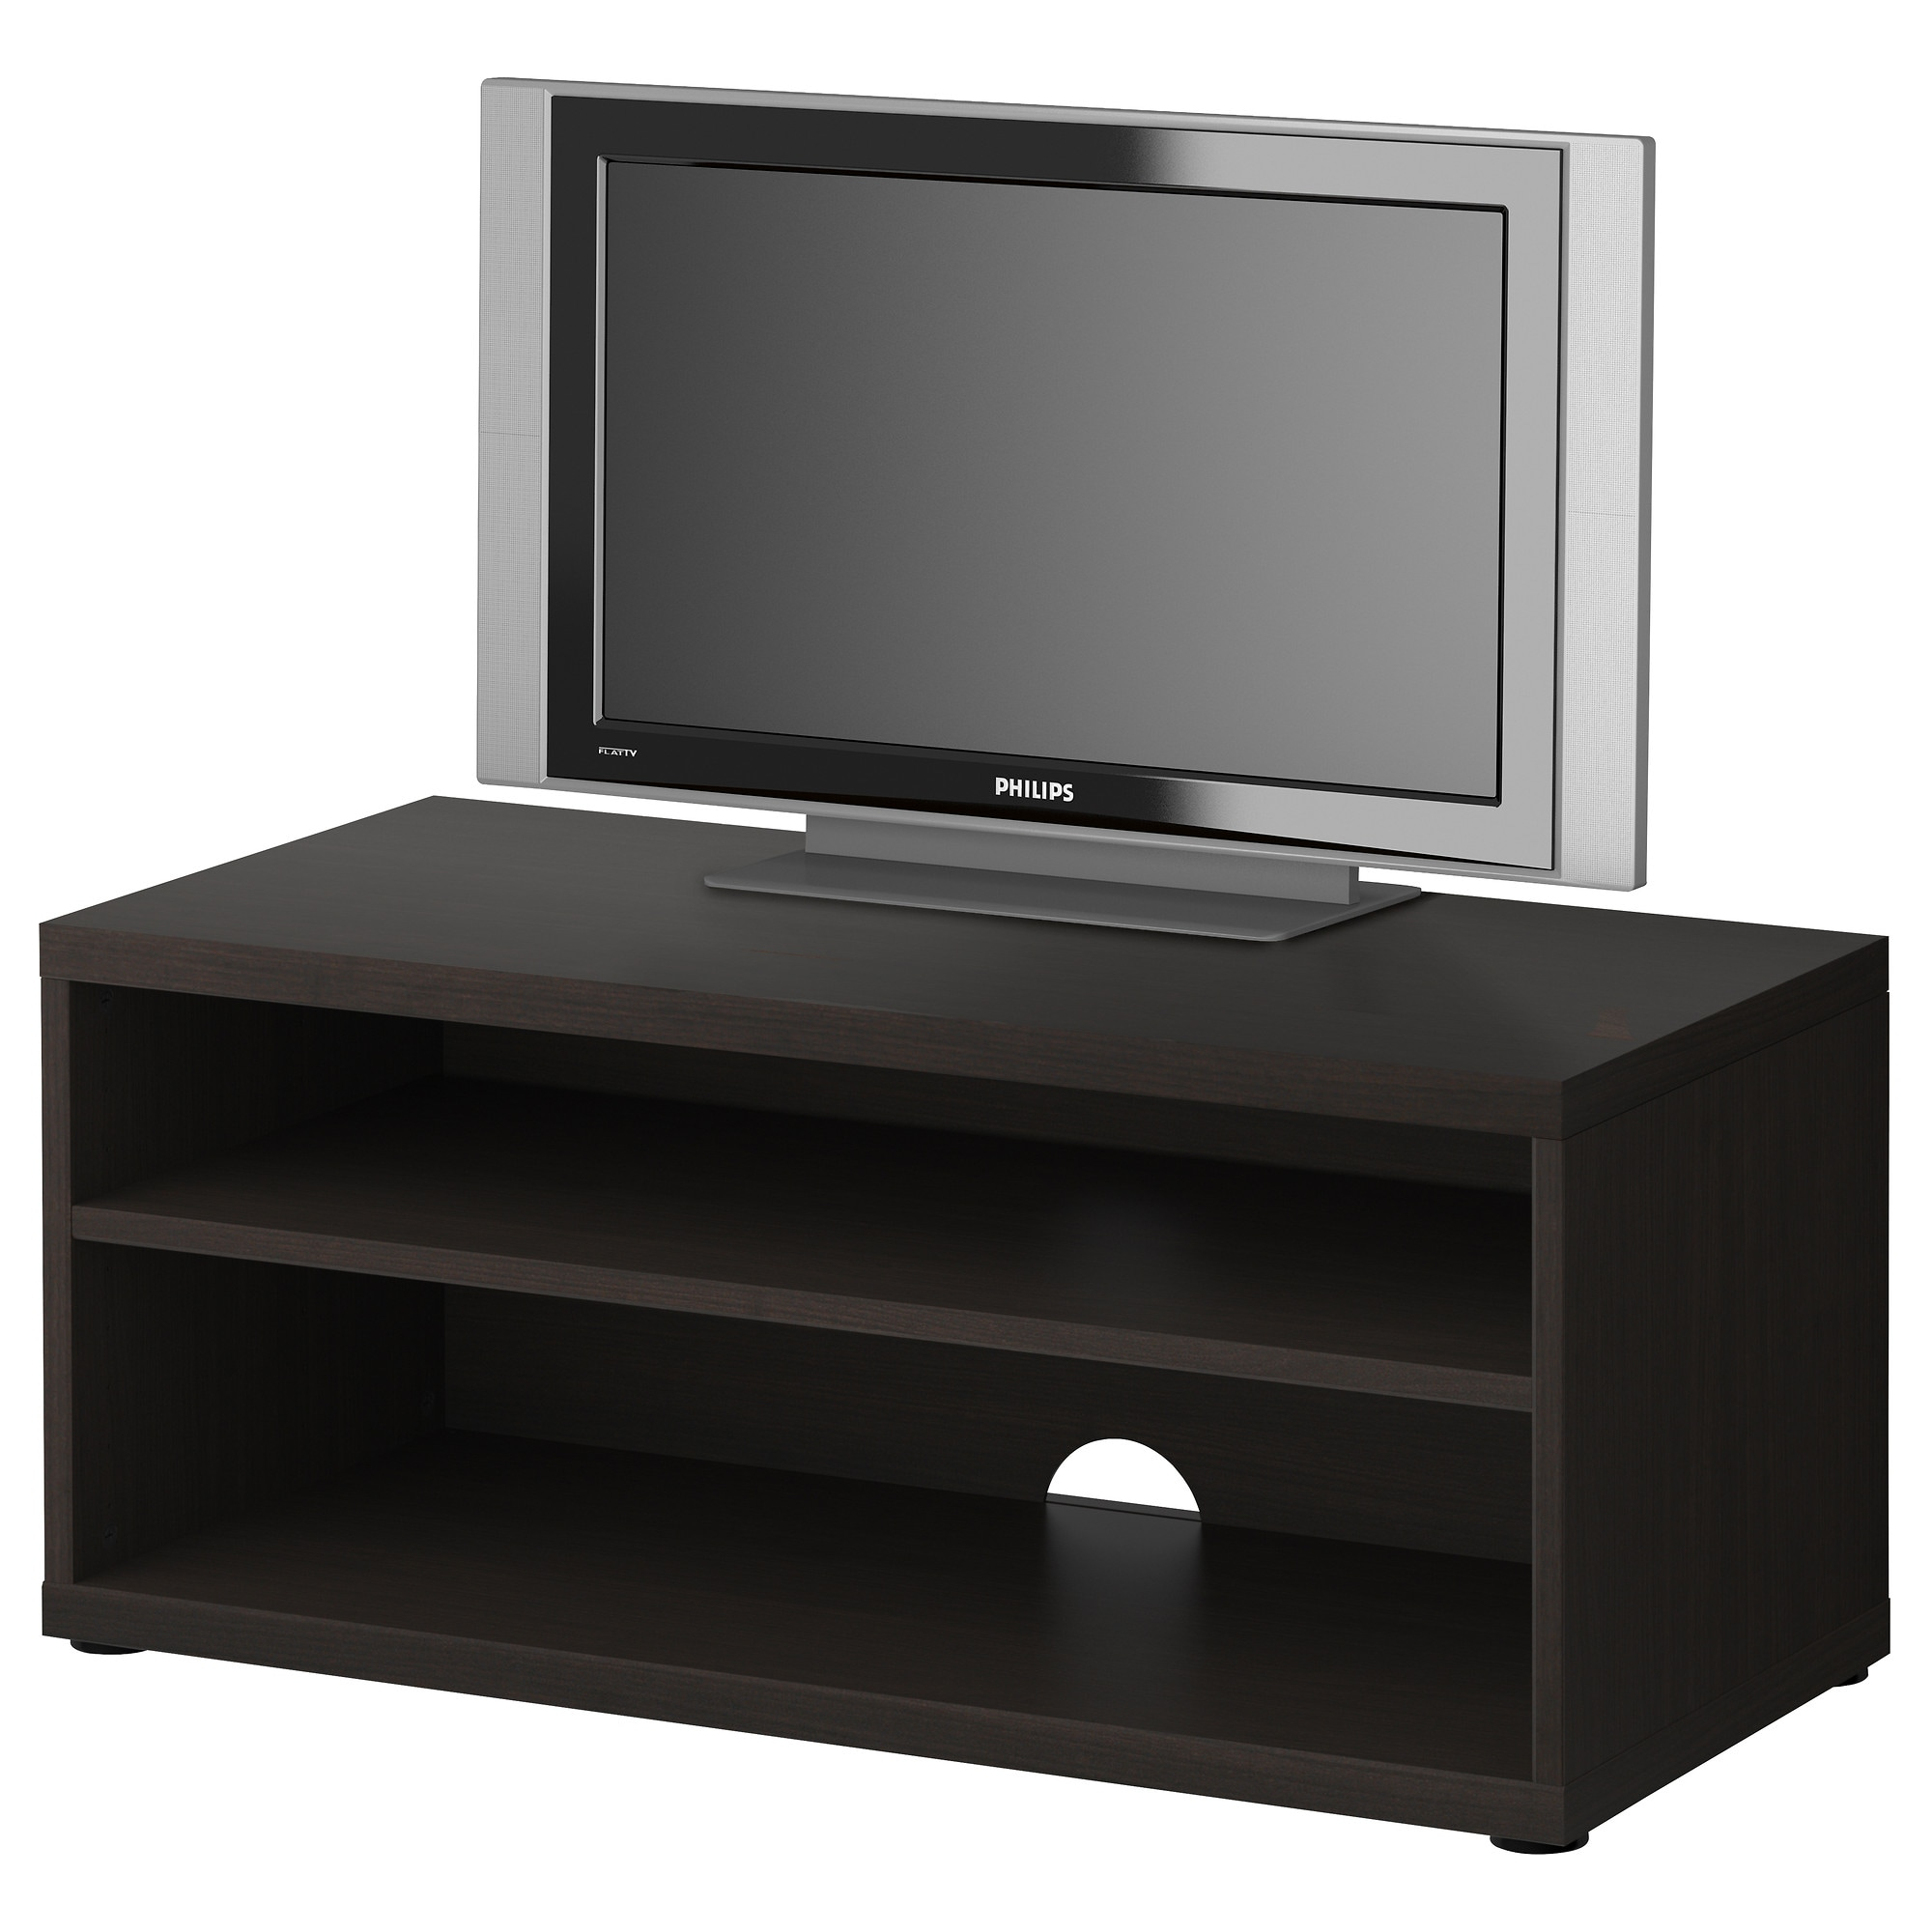 tv media furniture – tv stands cabinets  media storage  ikea - mosjÖ tv bench blackbrown width    depth